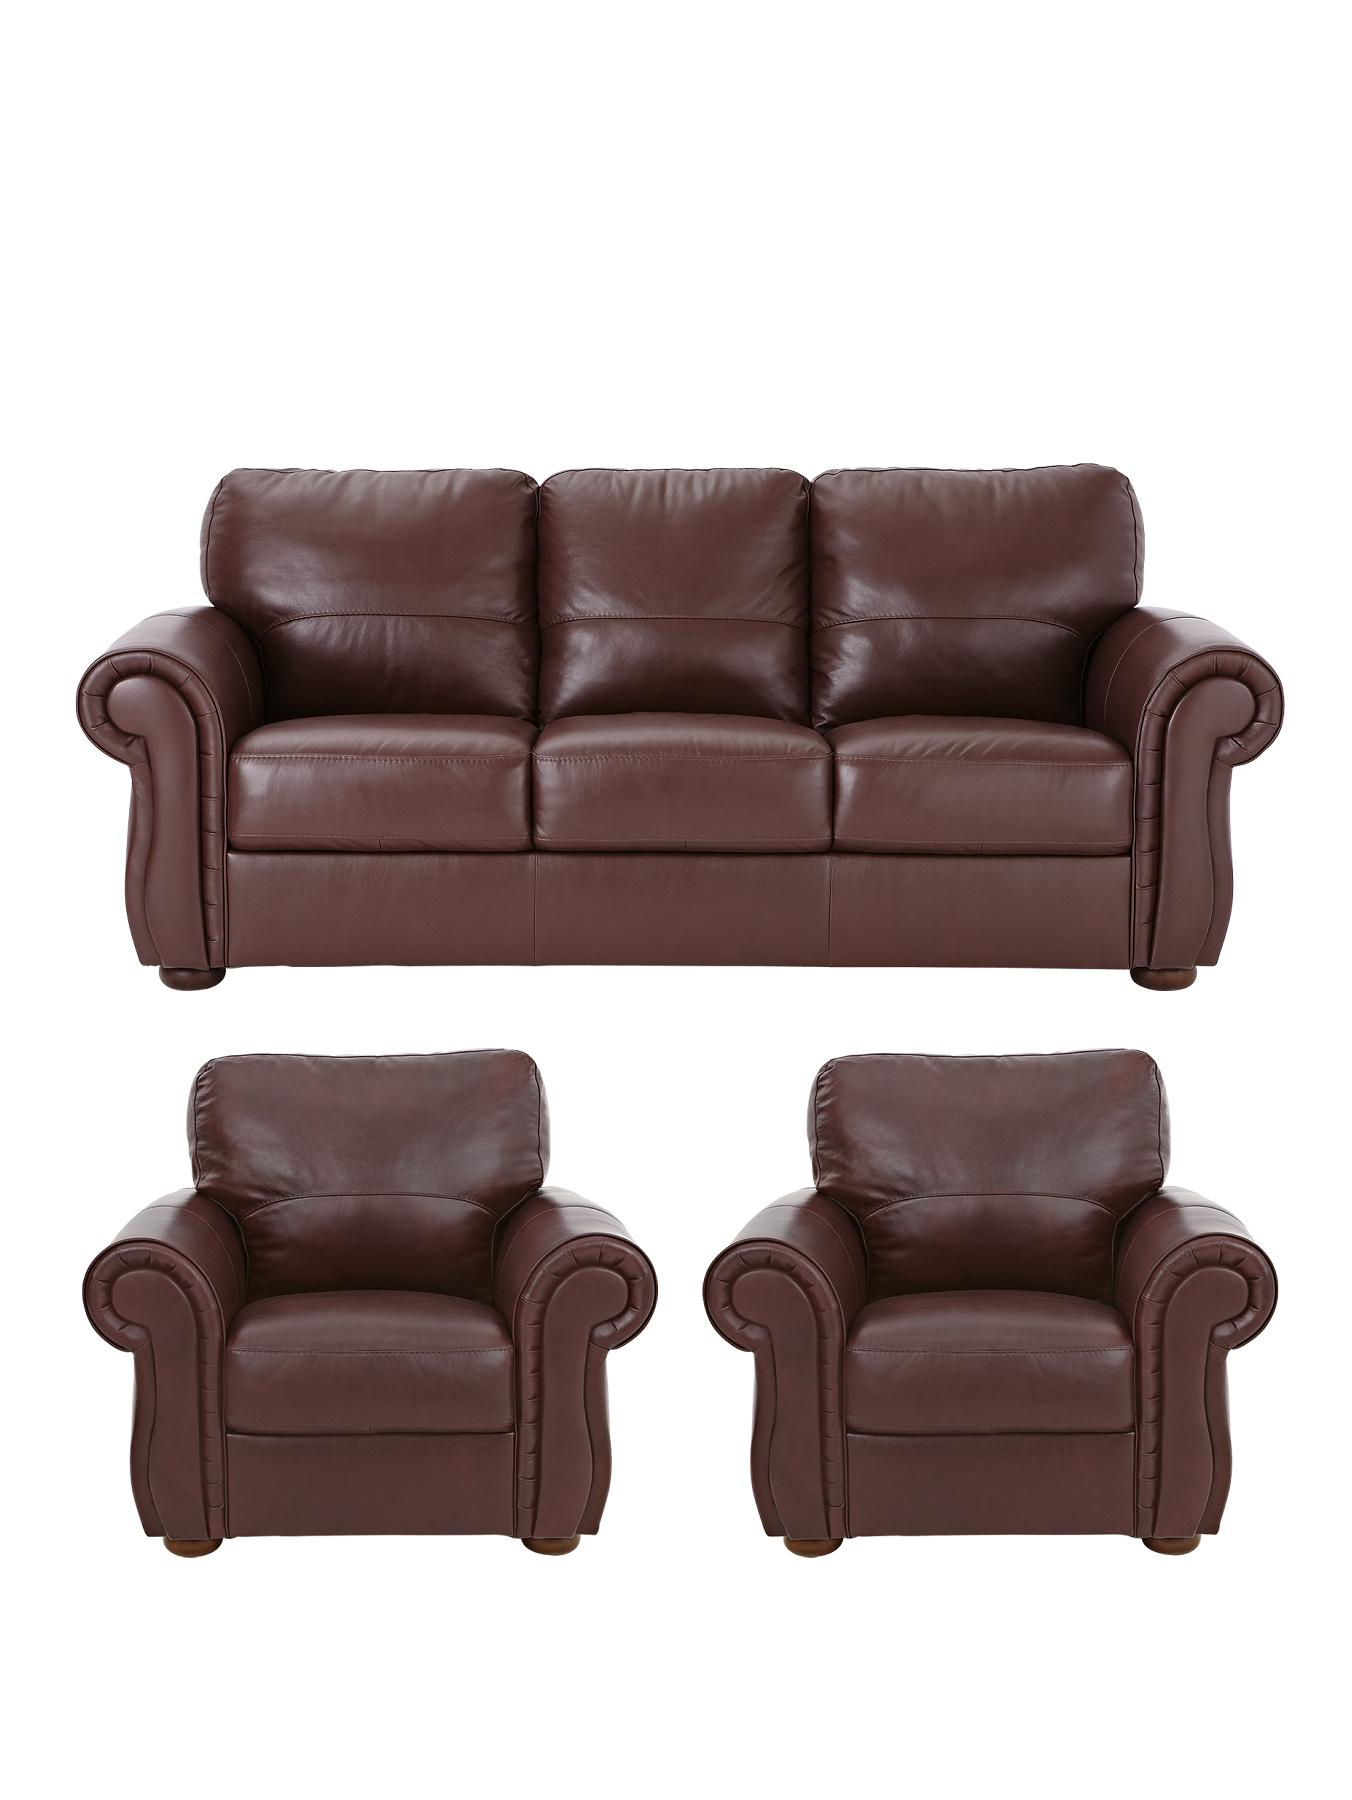 Cassina Italian Leather 3-Seater Sofa plus 2 Armchairs (buy and SAVE!), Tan,Brown